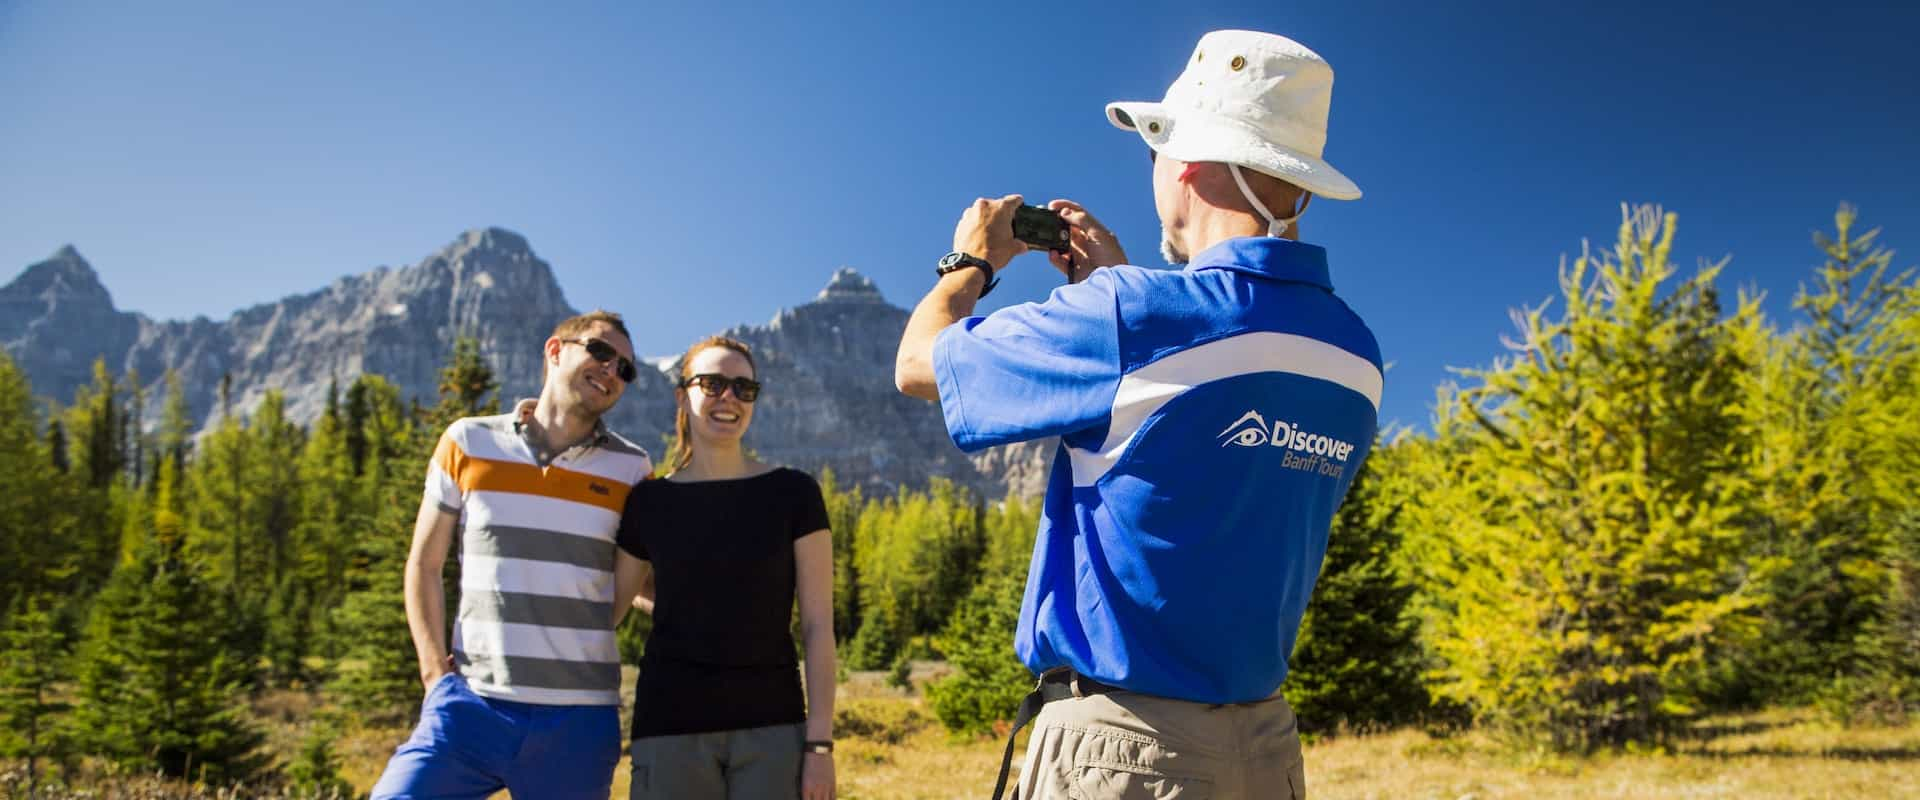 Private Hiking Tours